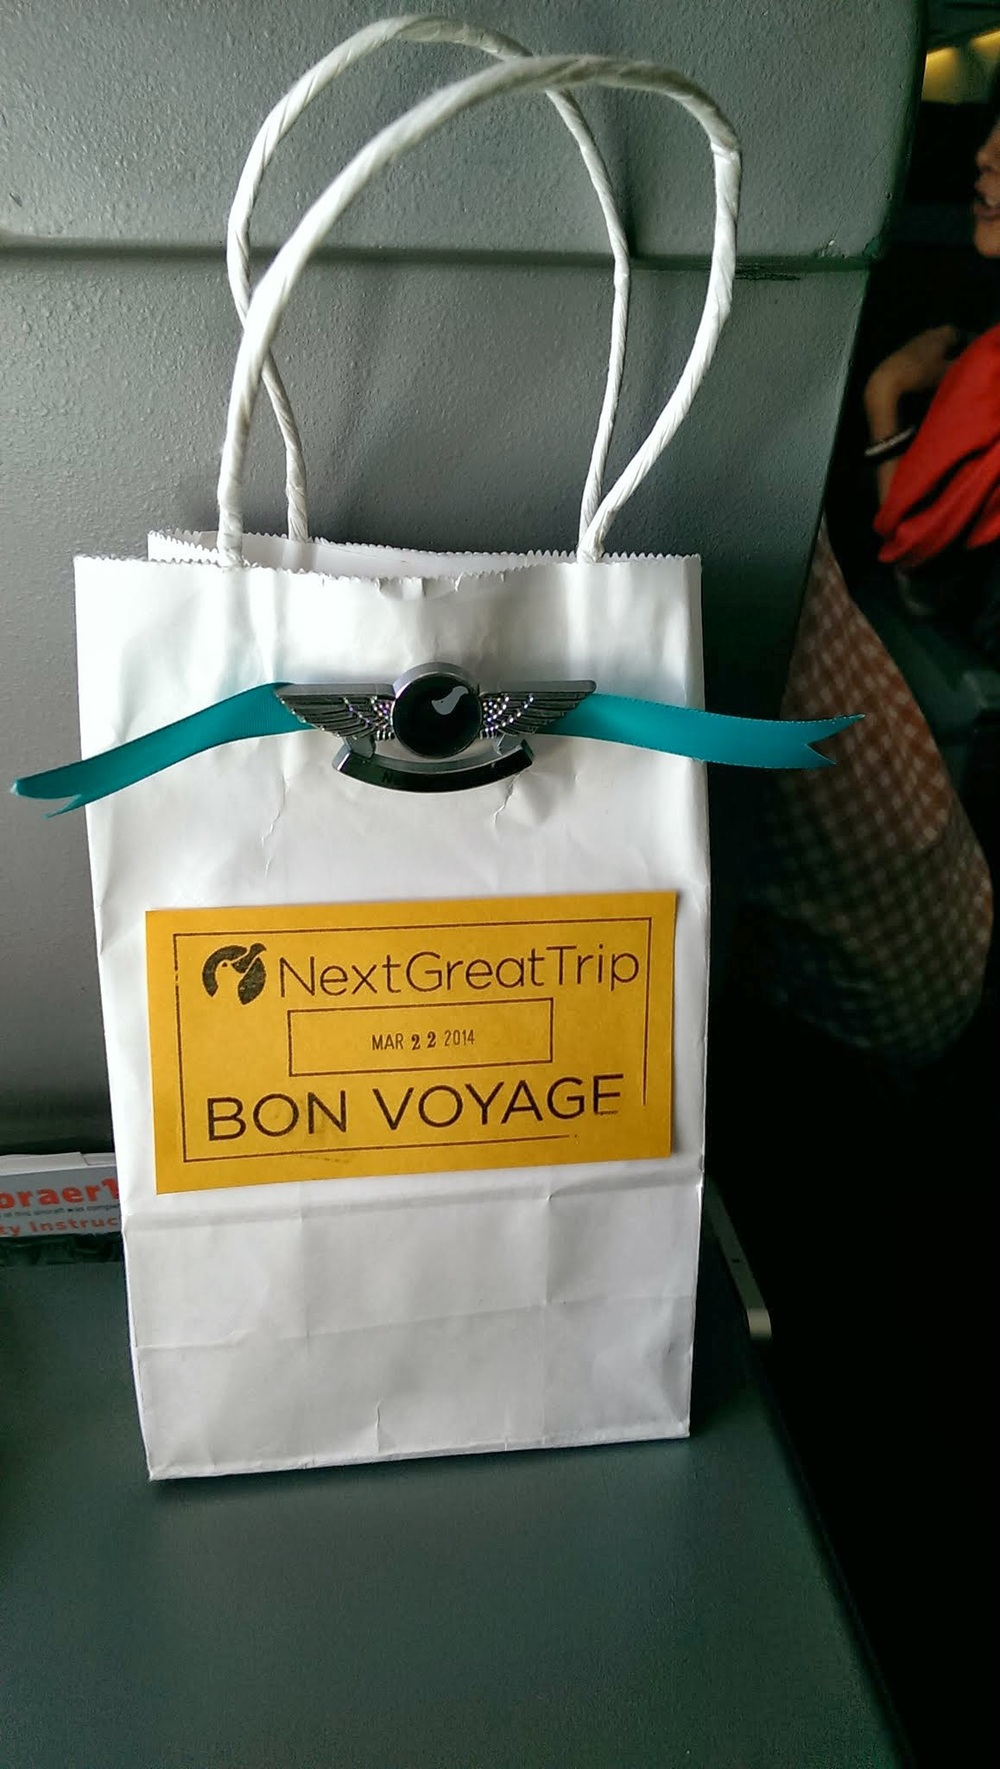 Fun NextGreatTrip gift bags for the kids on the flight!